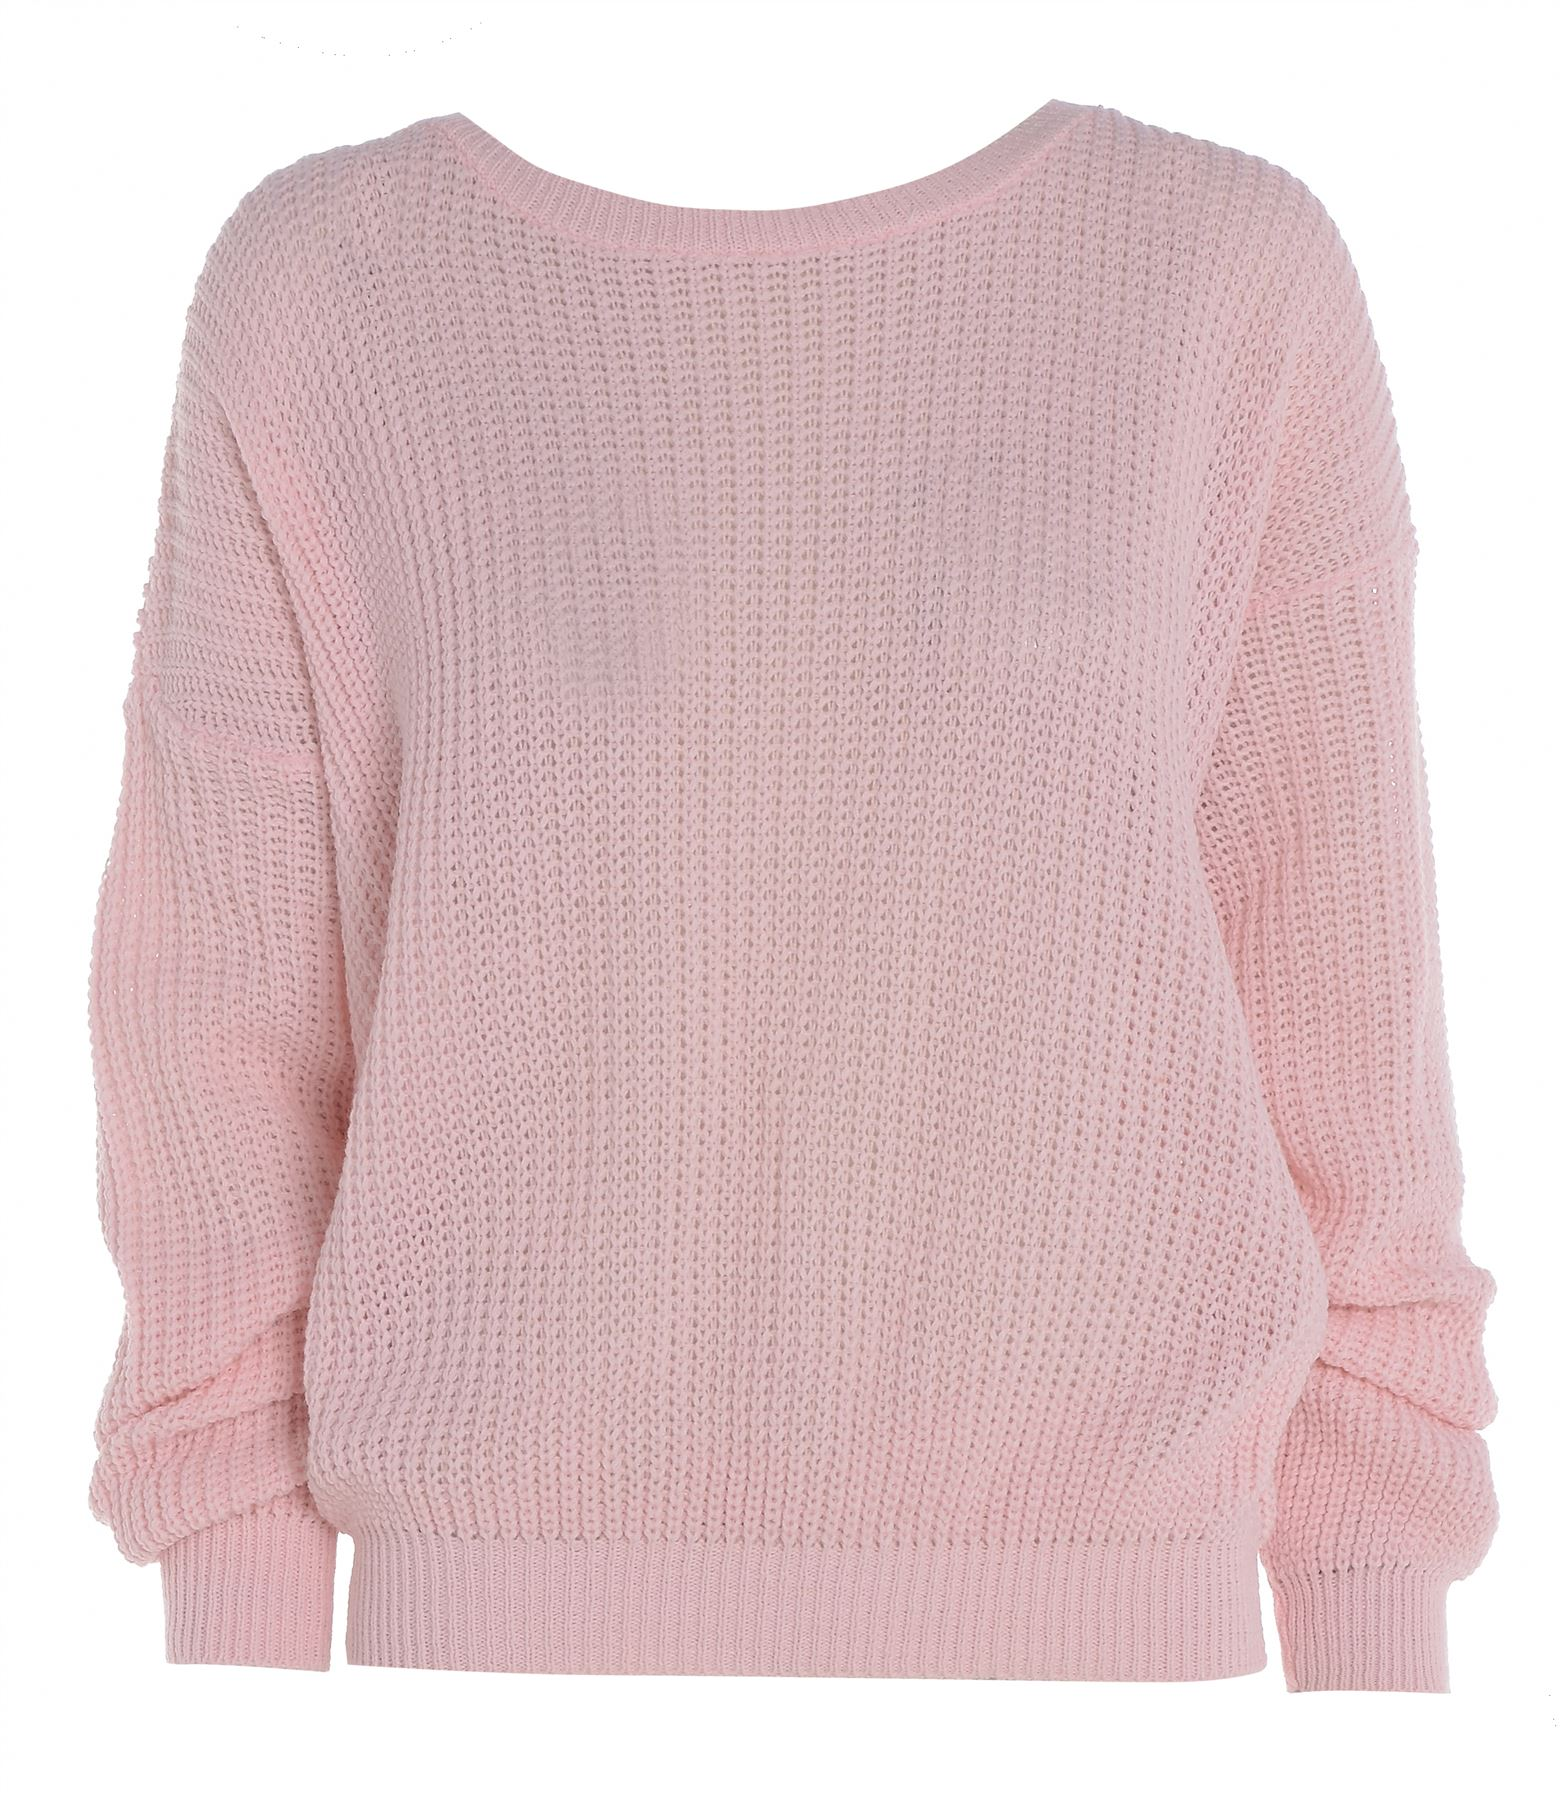 Find great deals on eBay for womens chunky sweaters. Shop with confidence.